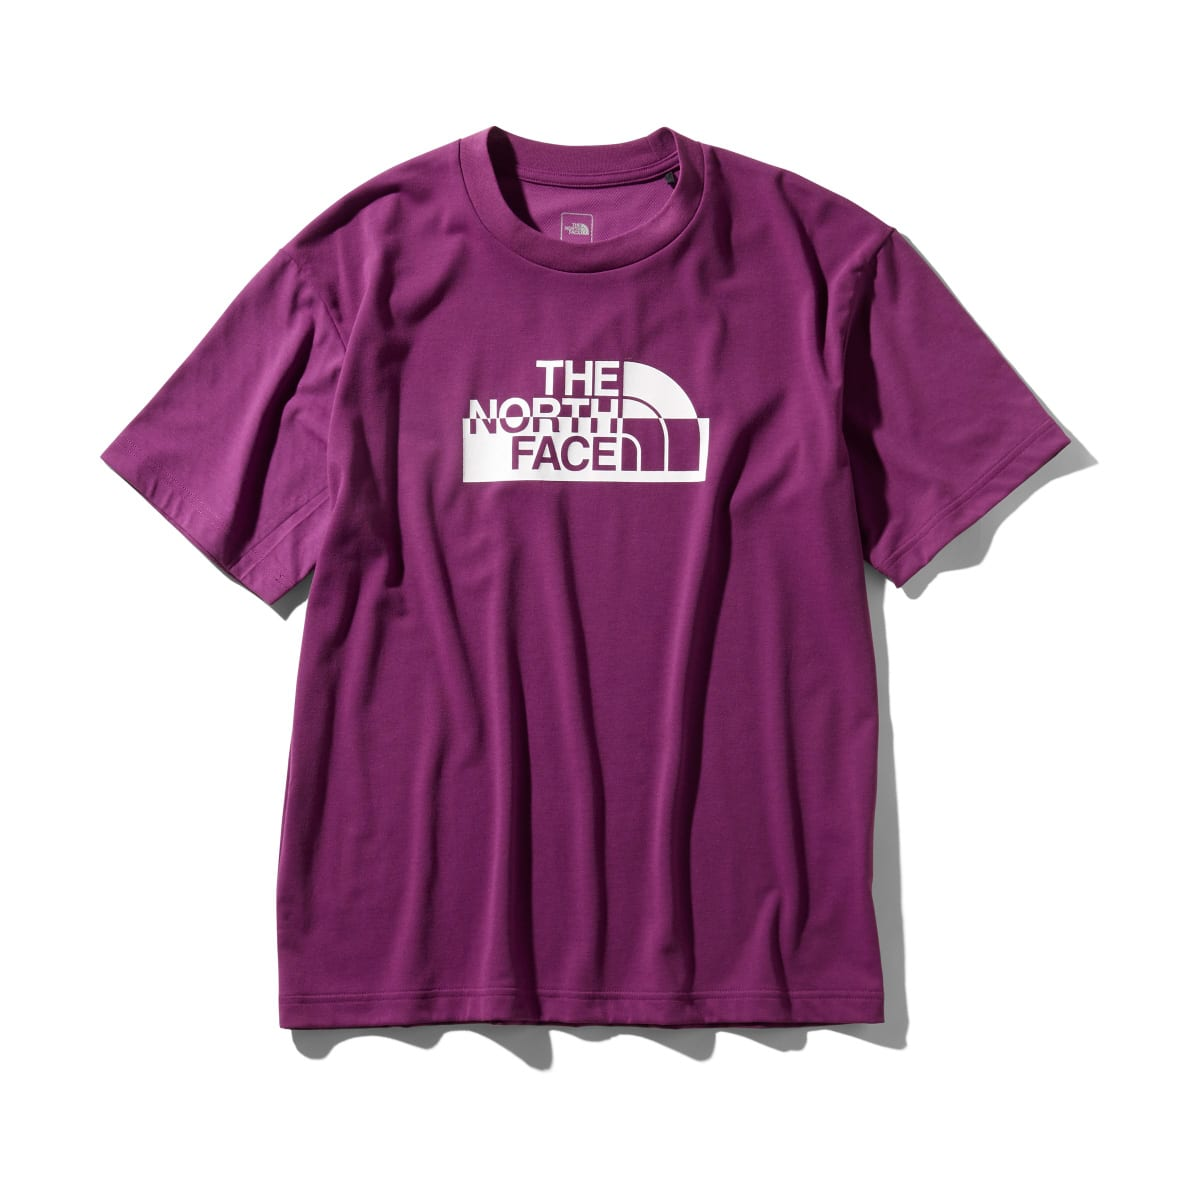 THE NORTH FACE S/S WATERSIDE GRAPHIC TEE  フロックスパープル 19SS-I_photo_large